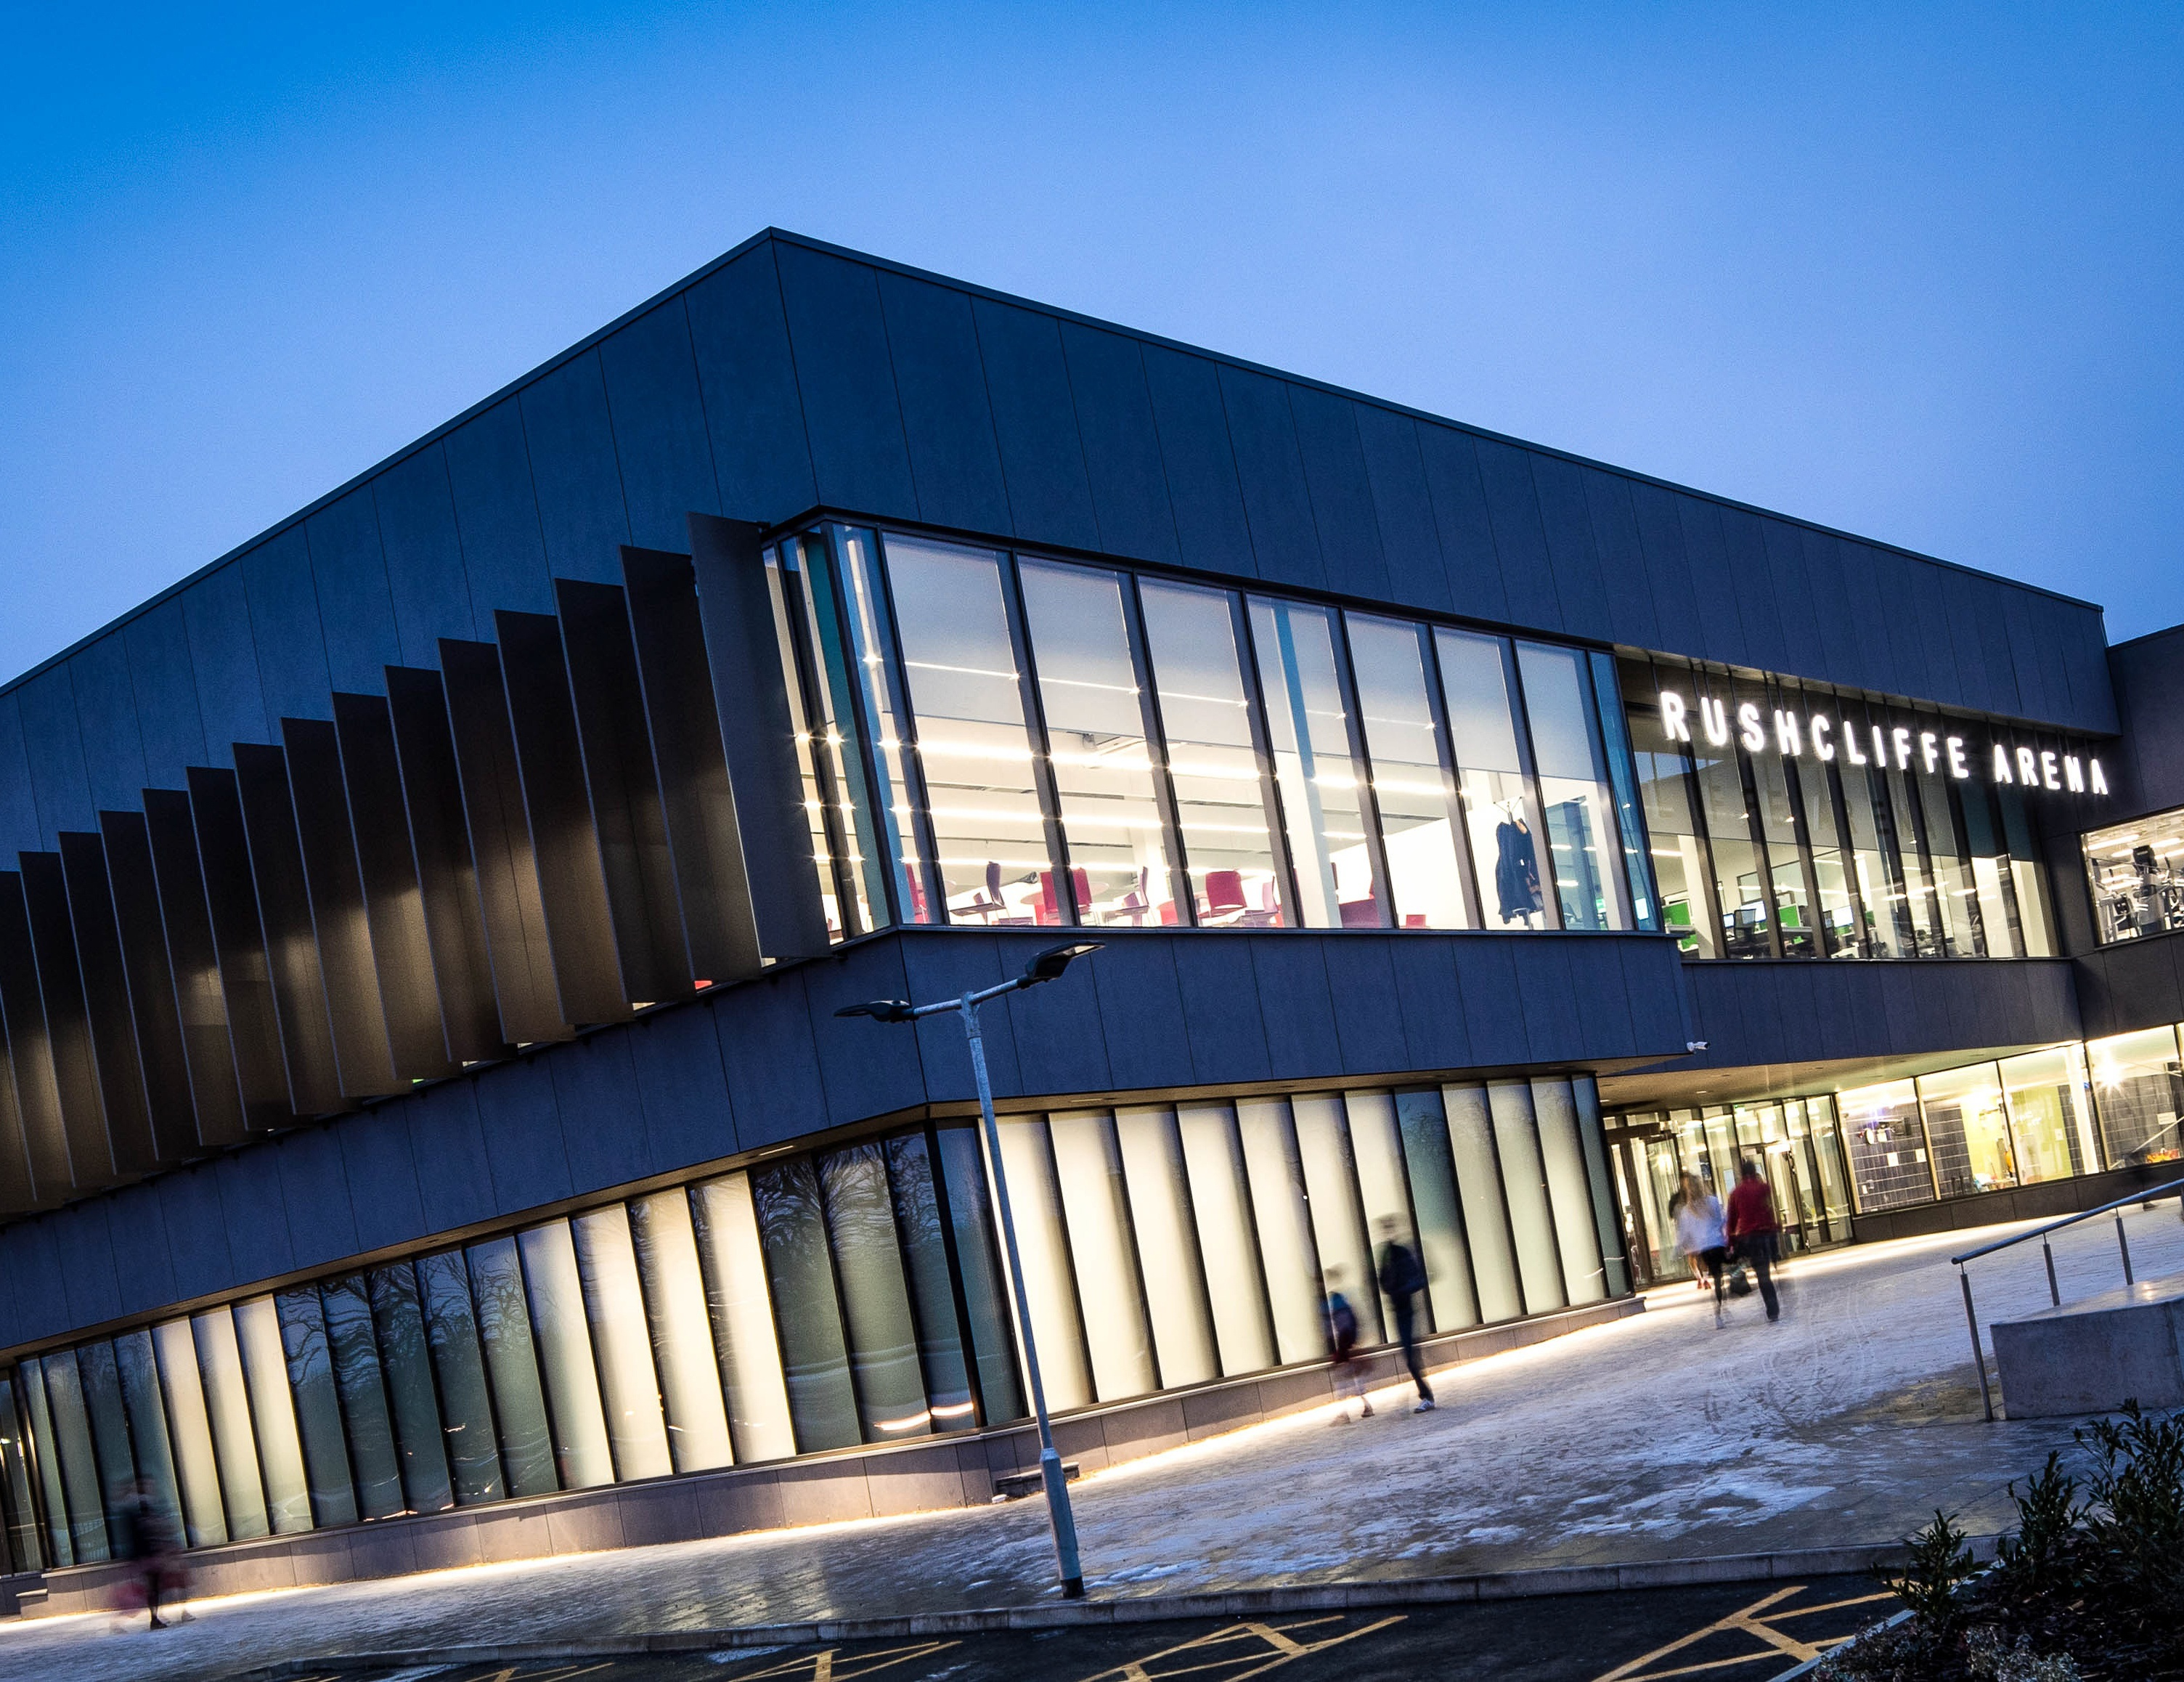 ACKLAM GRANGE_SCHOOL_CLIMATE FACADES - AURORA - ELLIPTICAL BLADE_STD_CAMBRIDGE_4STAR (4).jpg